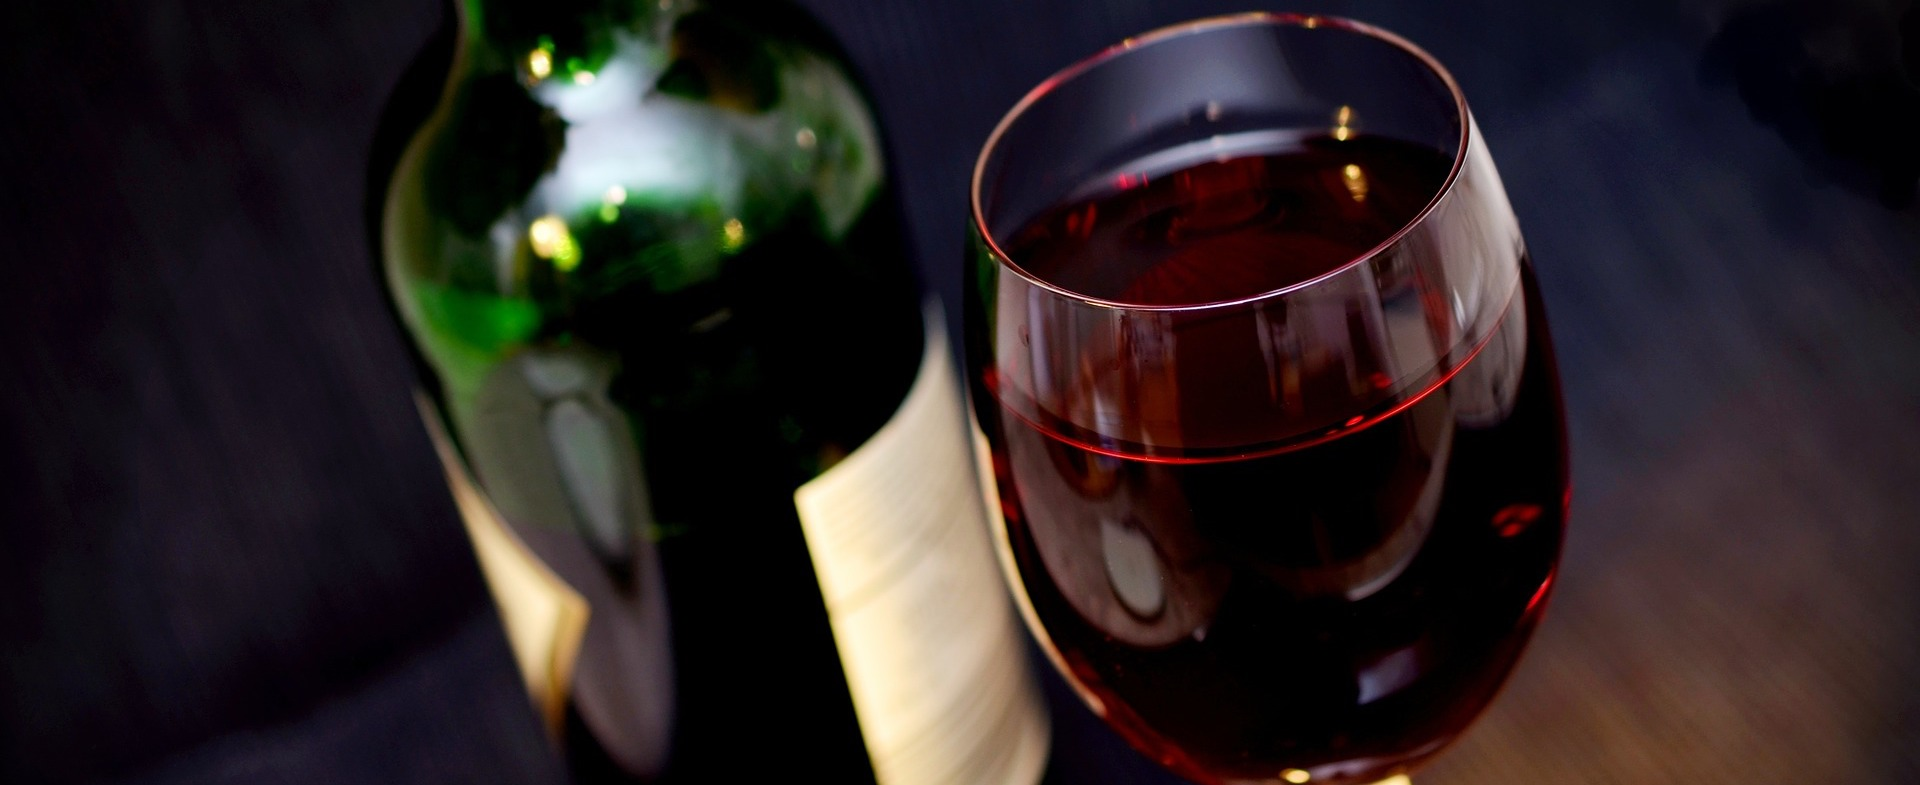 Skip the room-temp Red Wine and drink it chilled instead